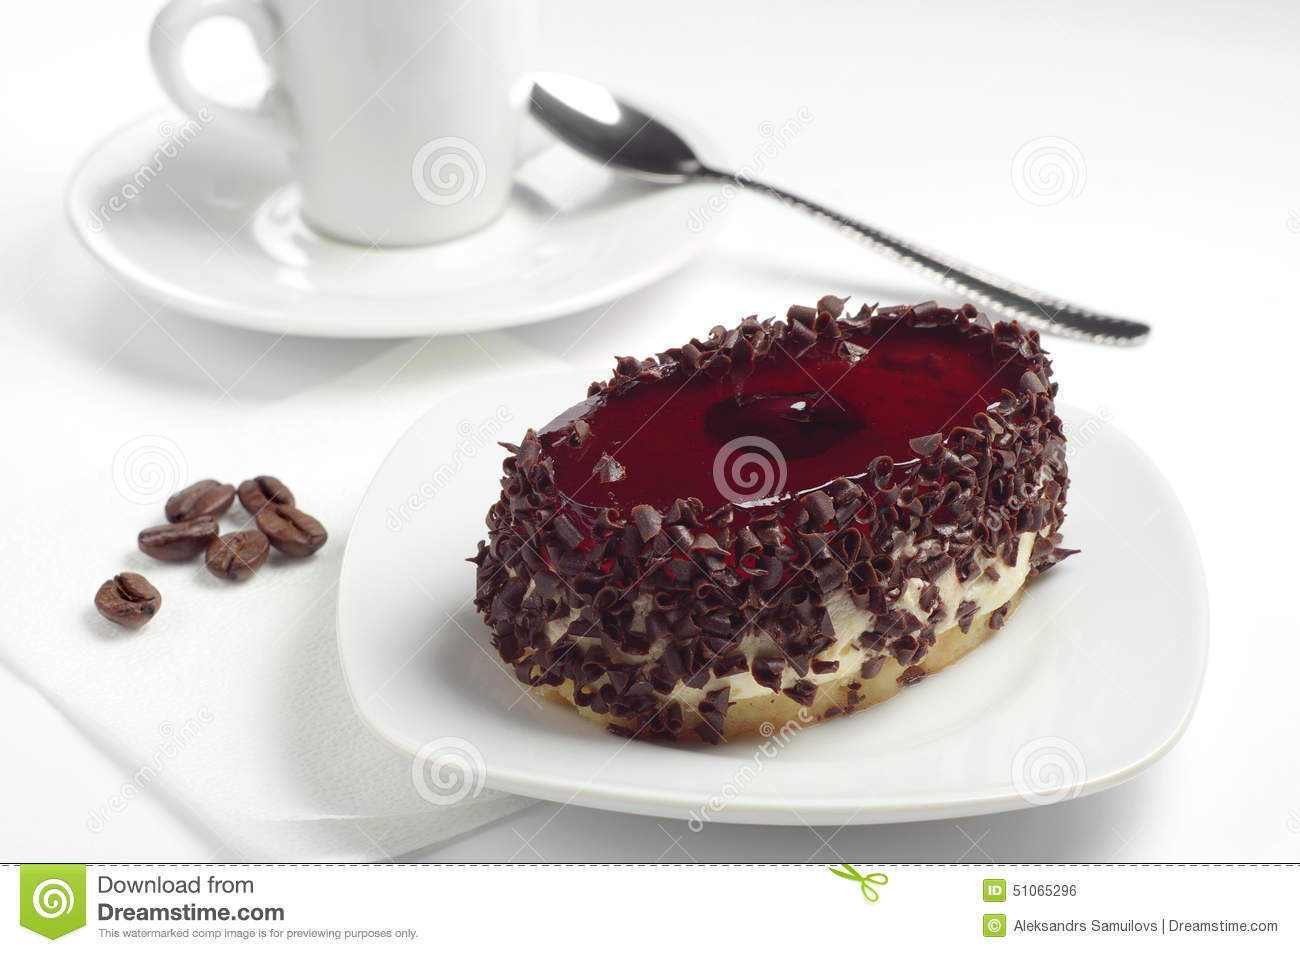 Cartoon Jelly Cake Recipe: Chocolate Cake For The Cake And Jelly Beans. Stock Image